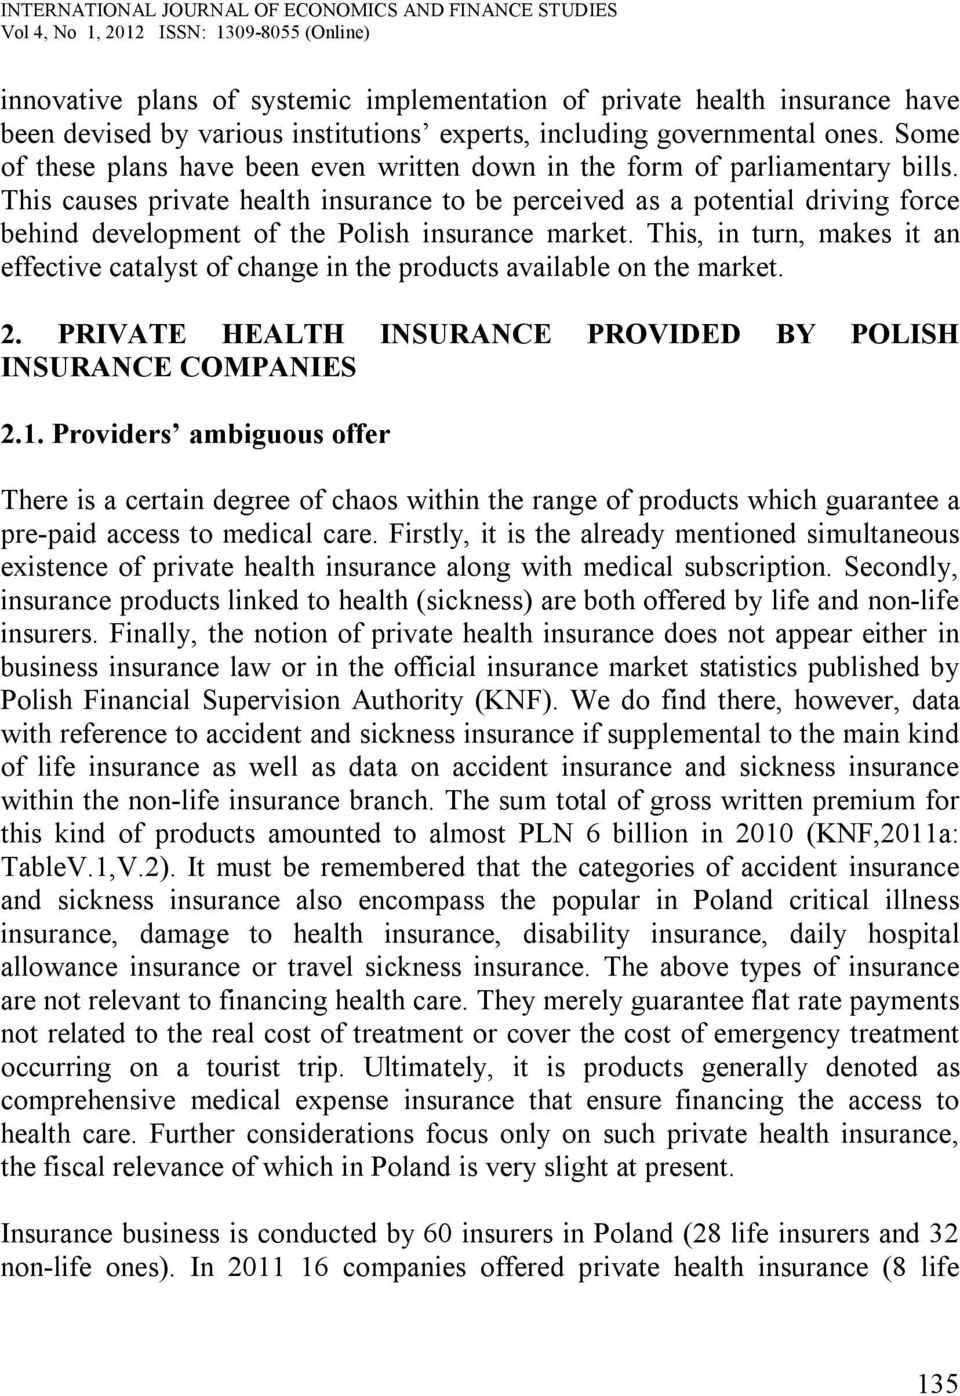 This causes private health insurance to be perceived as a potential driving force behind development of the Polish insurance market.